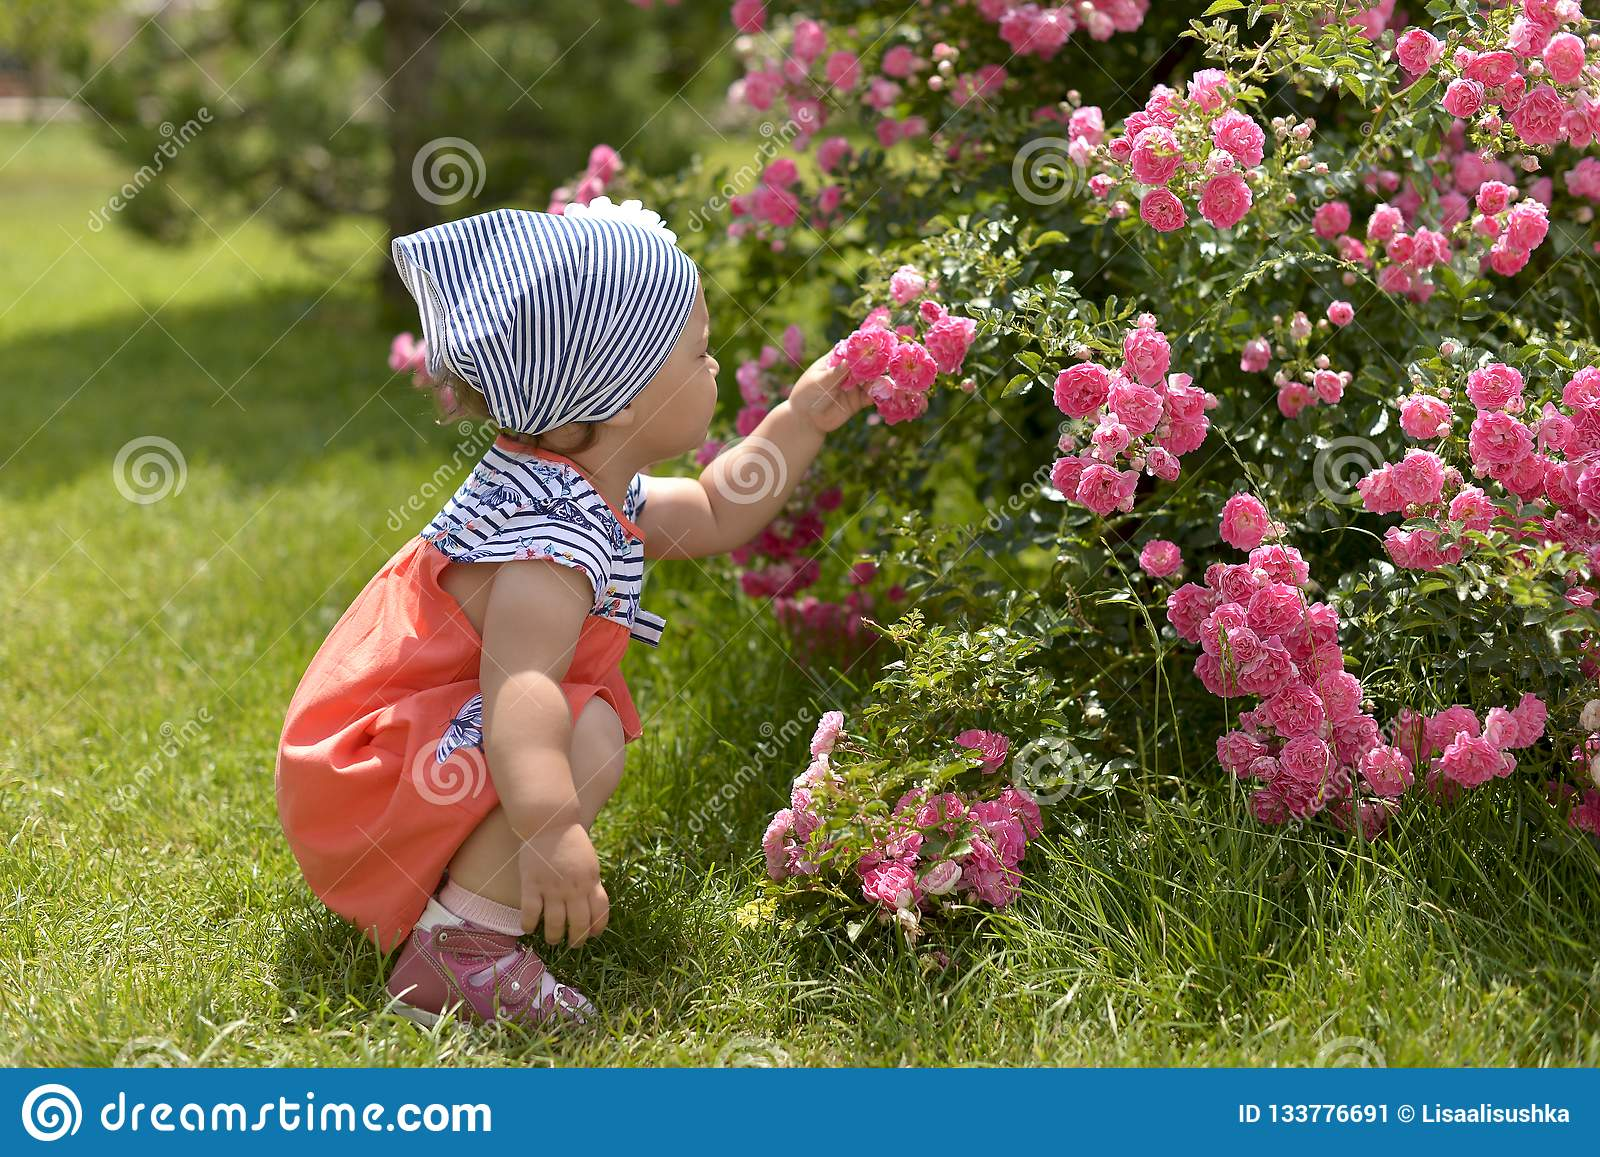 Little girl in walking in the garden, sniffing pink roses.